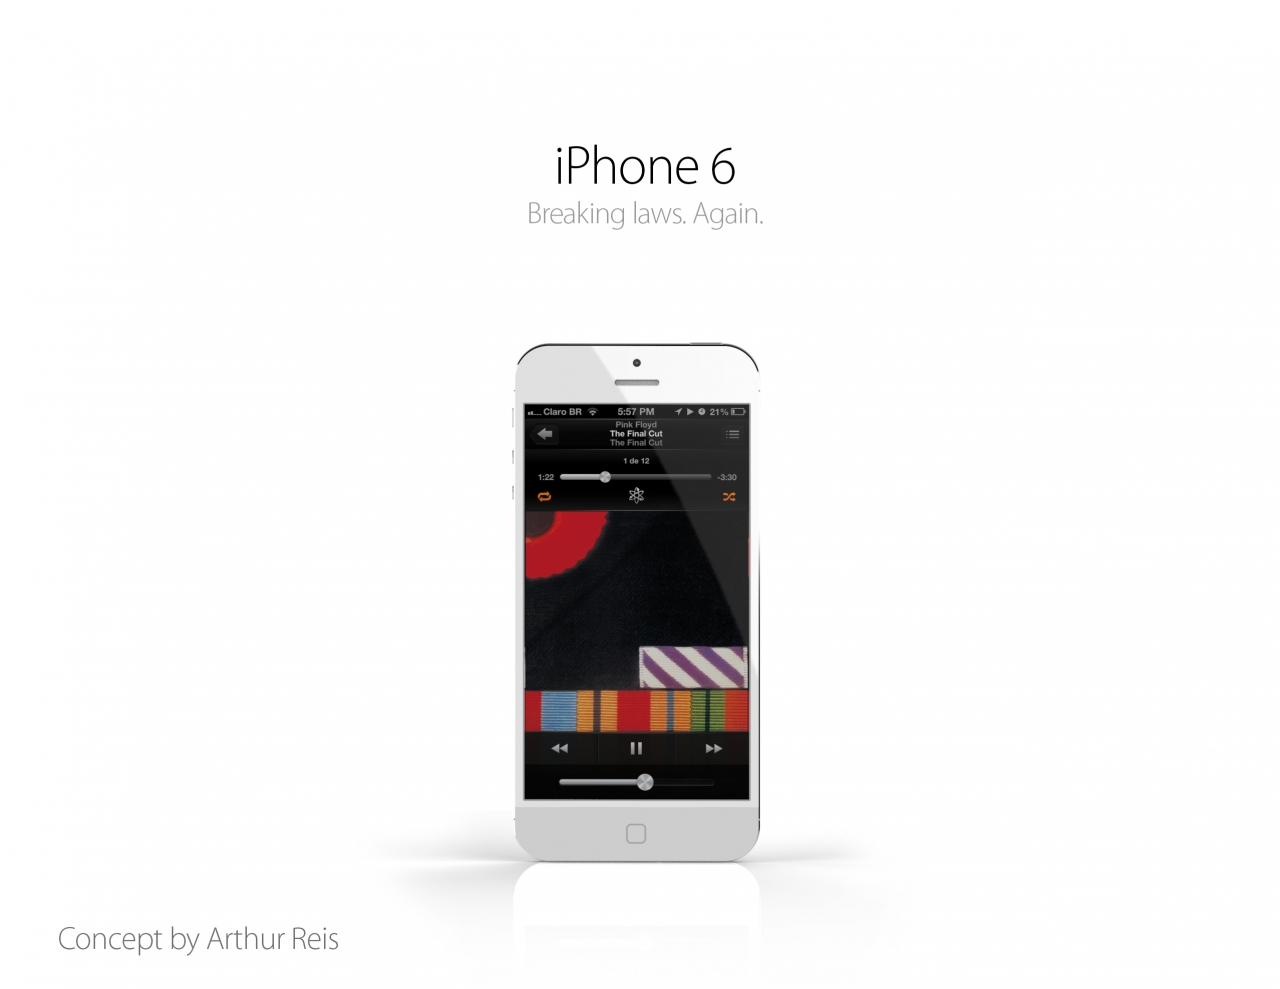 iPhone 6 Concepto by Arthur Reis